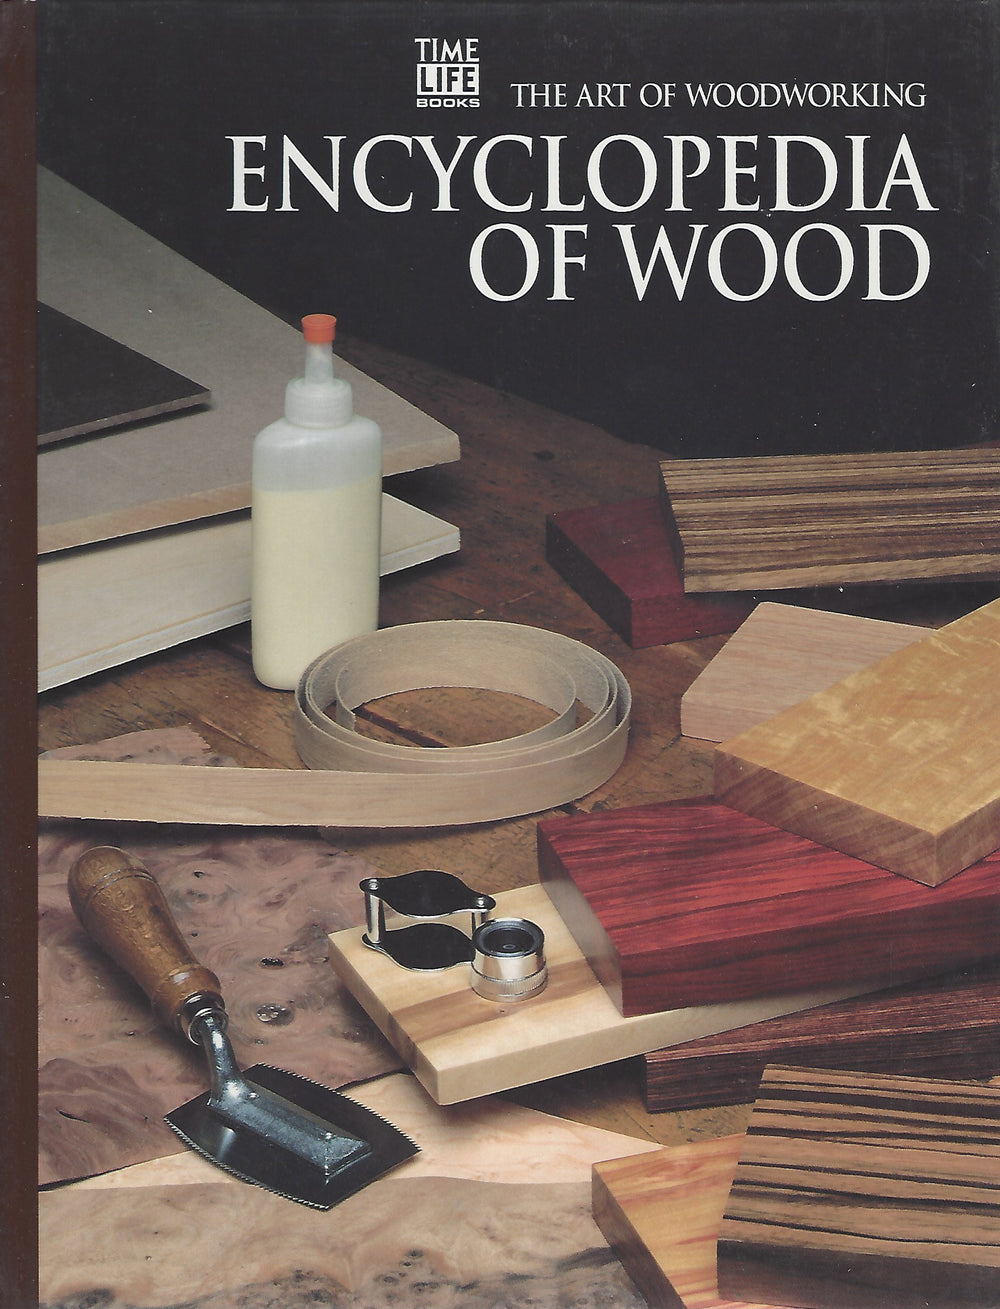 TIME-LIFE: The Art of Woodworking; Encyclopedia of Wood ( St. Remy Press) 1993